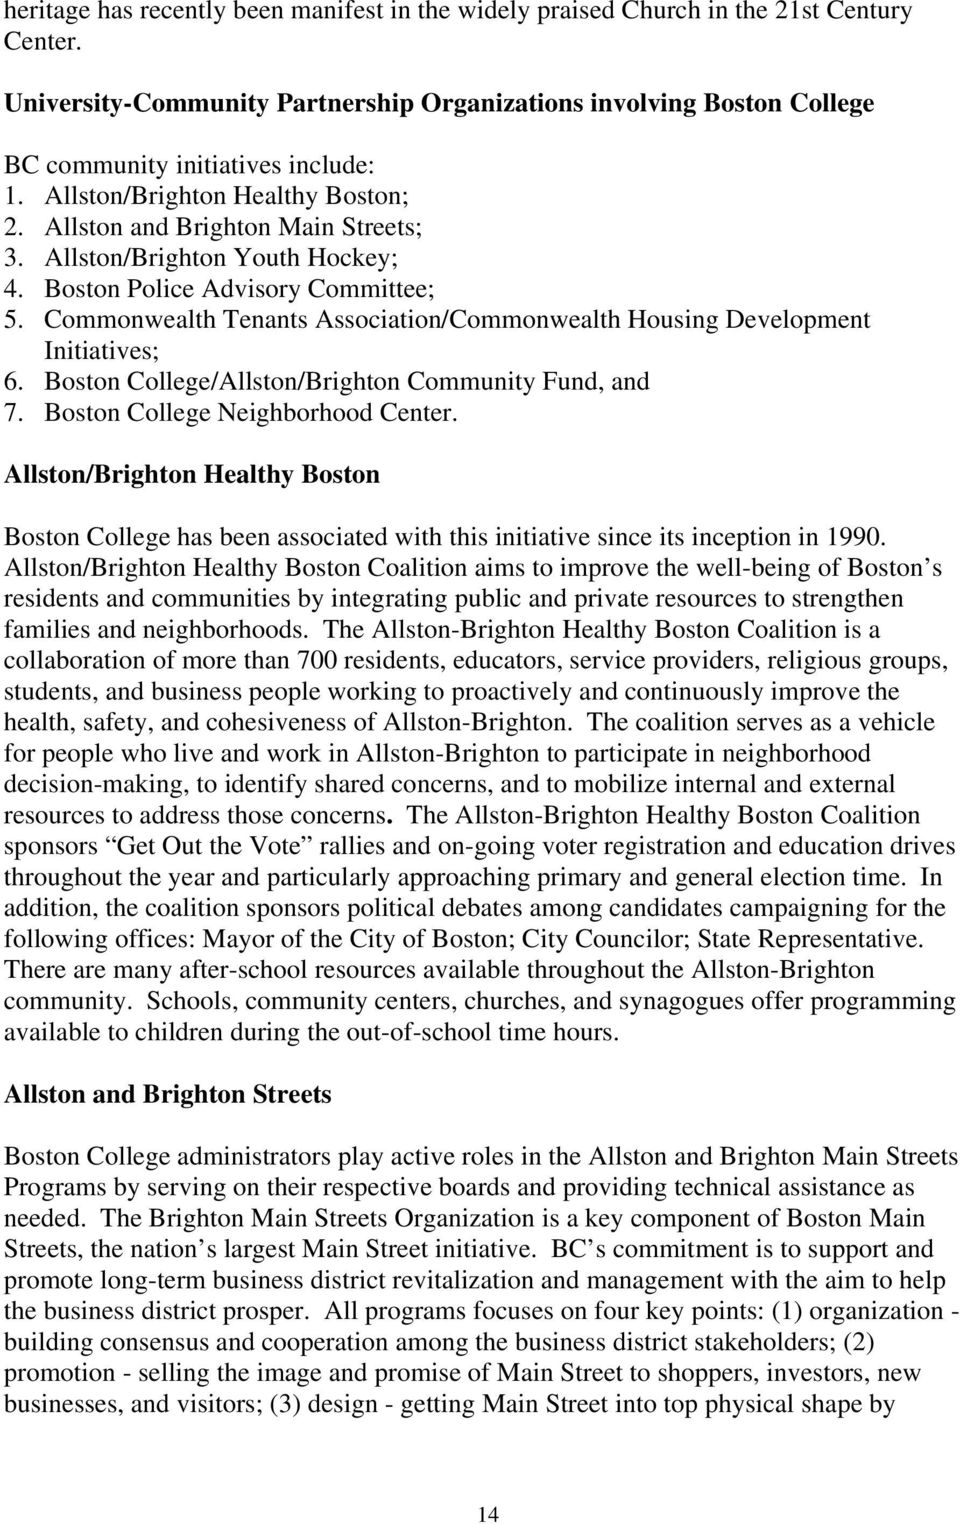 Allston/Brighton Youth Hockey; 4. Boston Police Advisory Committee; 5. Commonwealth Tenants Association/Commonwealth Housing Development Initiatives; 6.